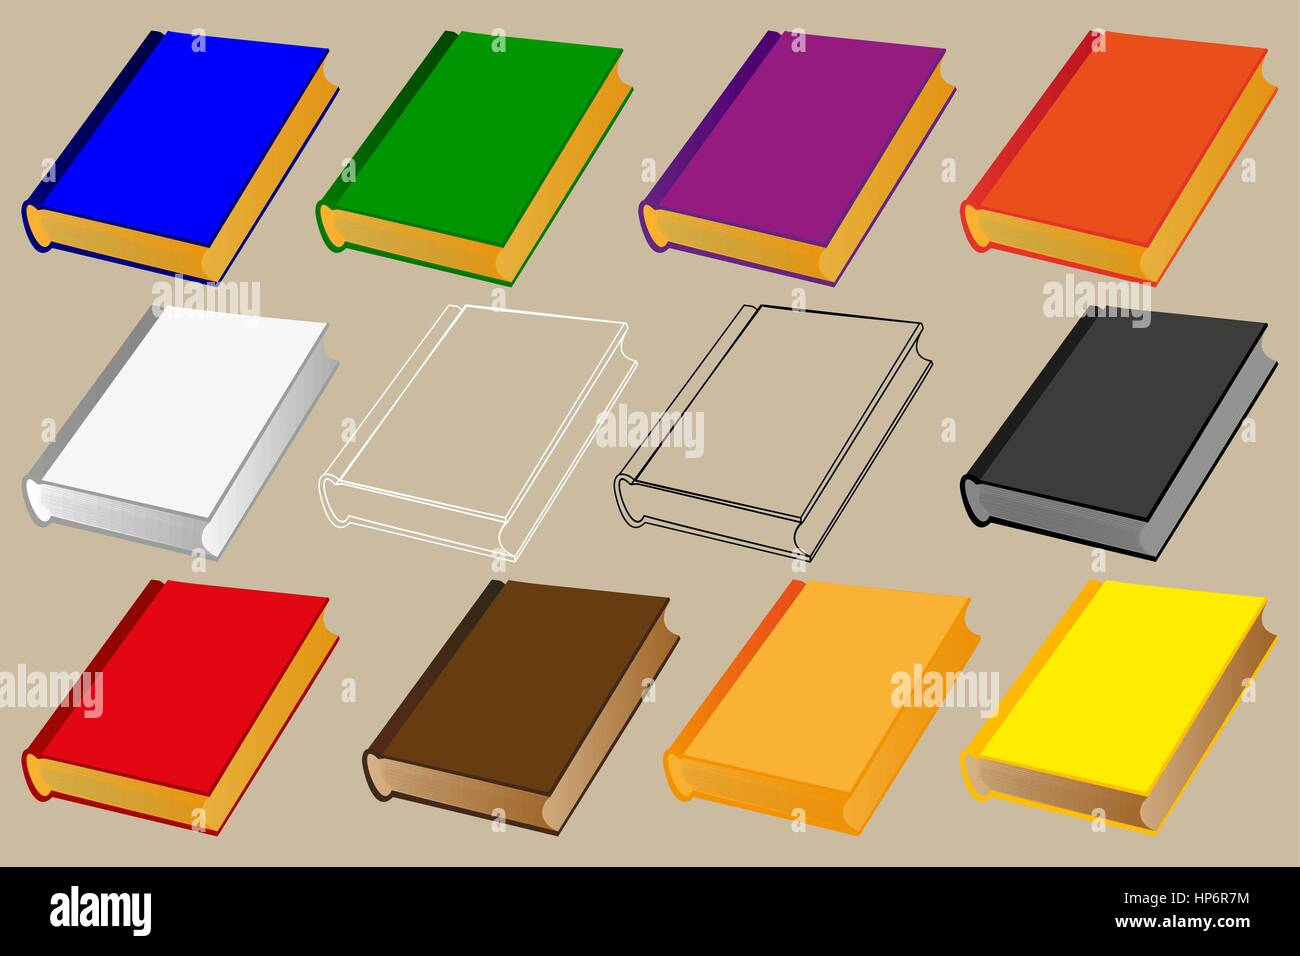 book vector illustration - set, books of different colors Stock ...